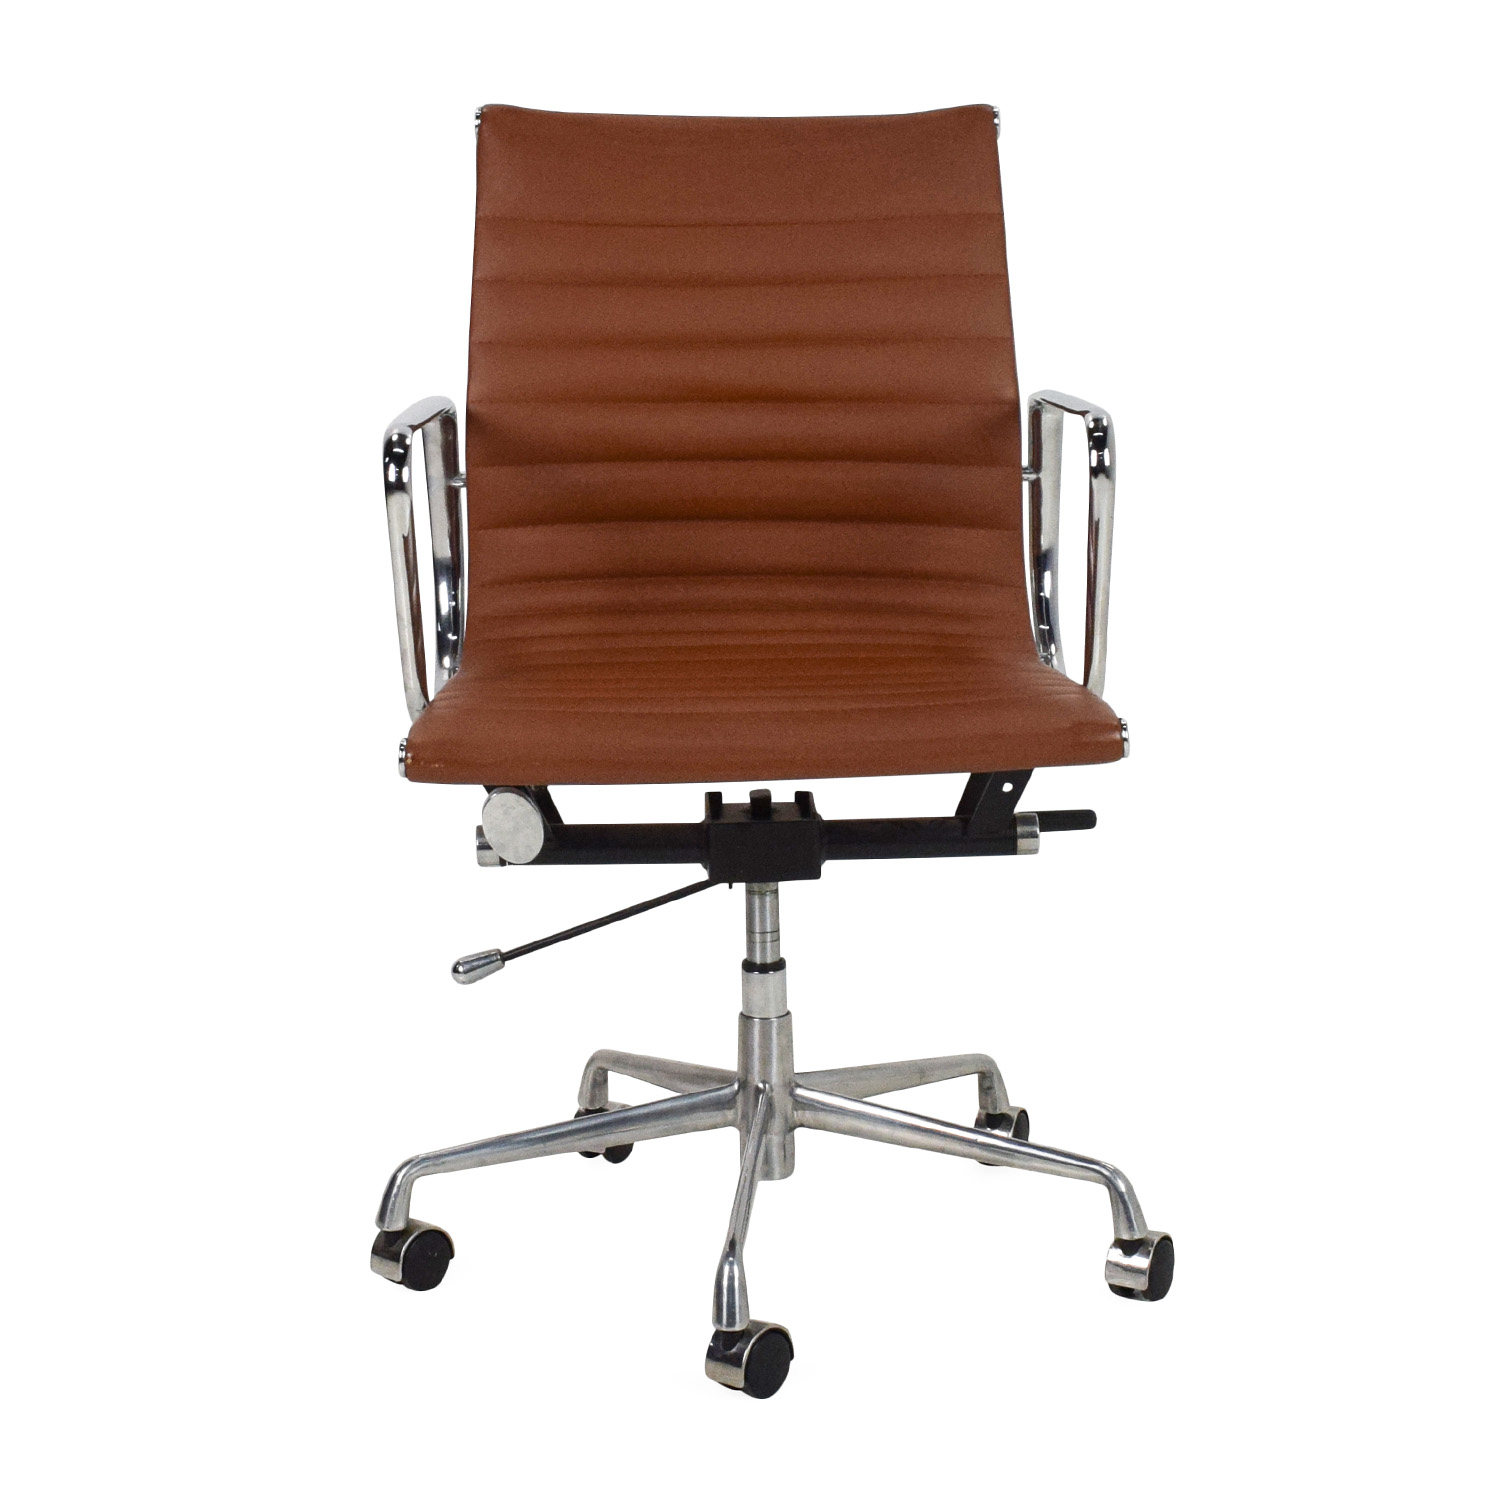 Chrome Office Chair sale